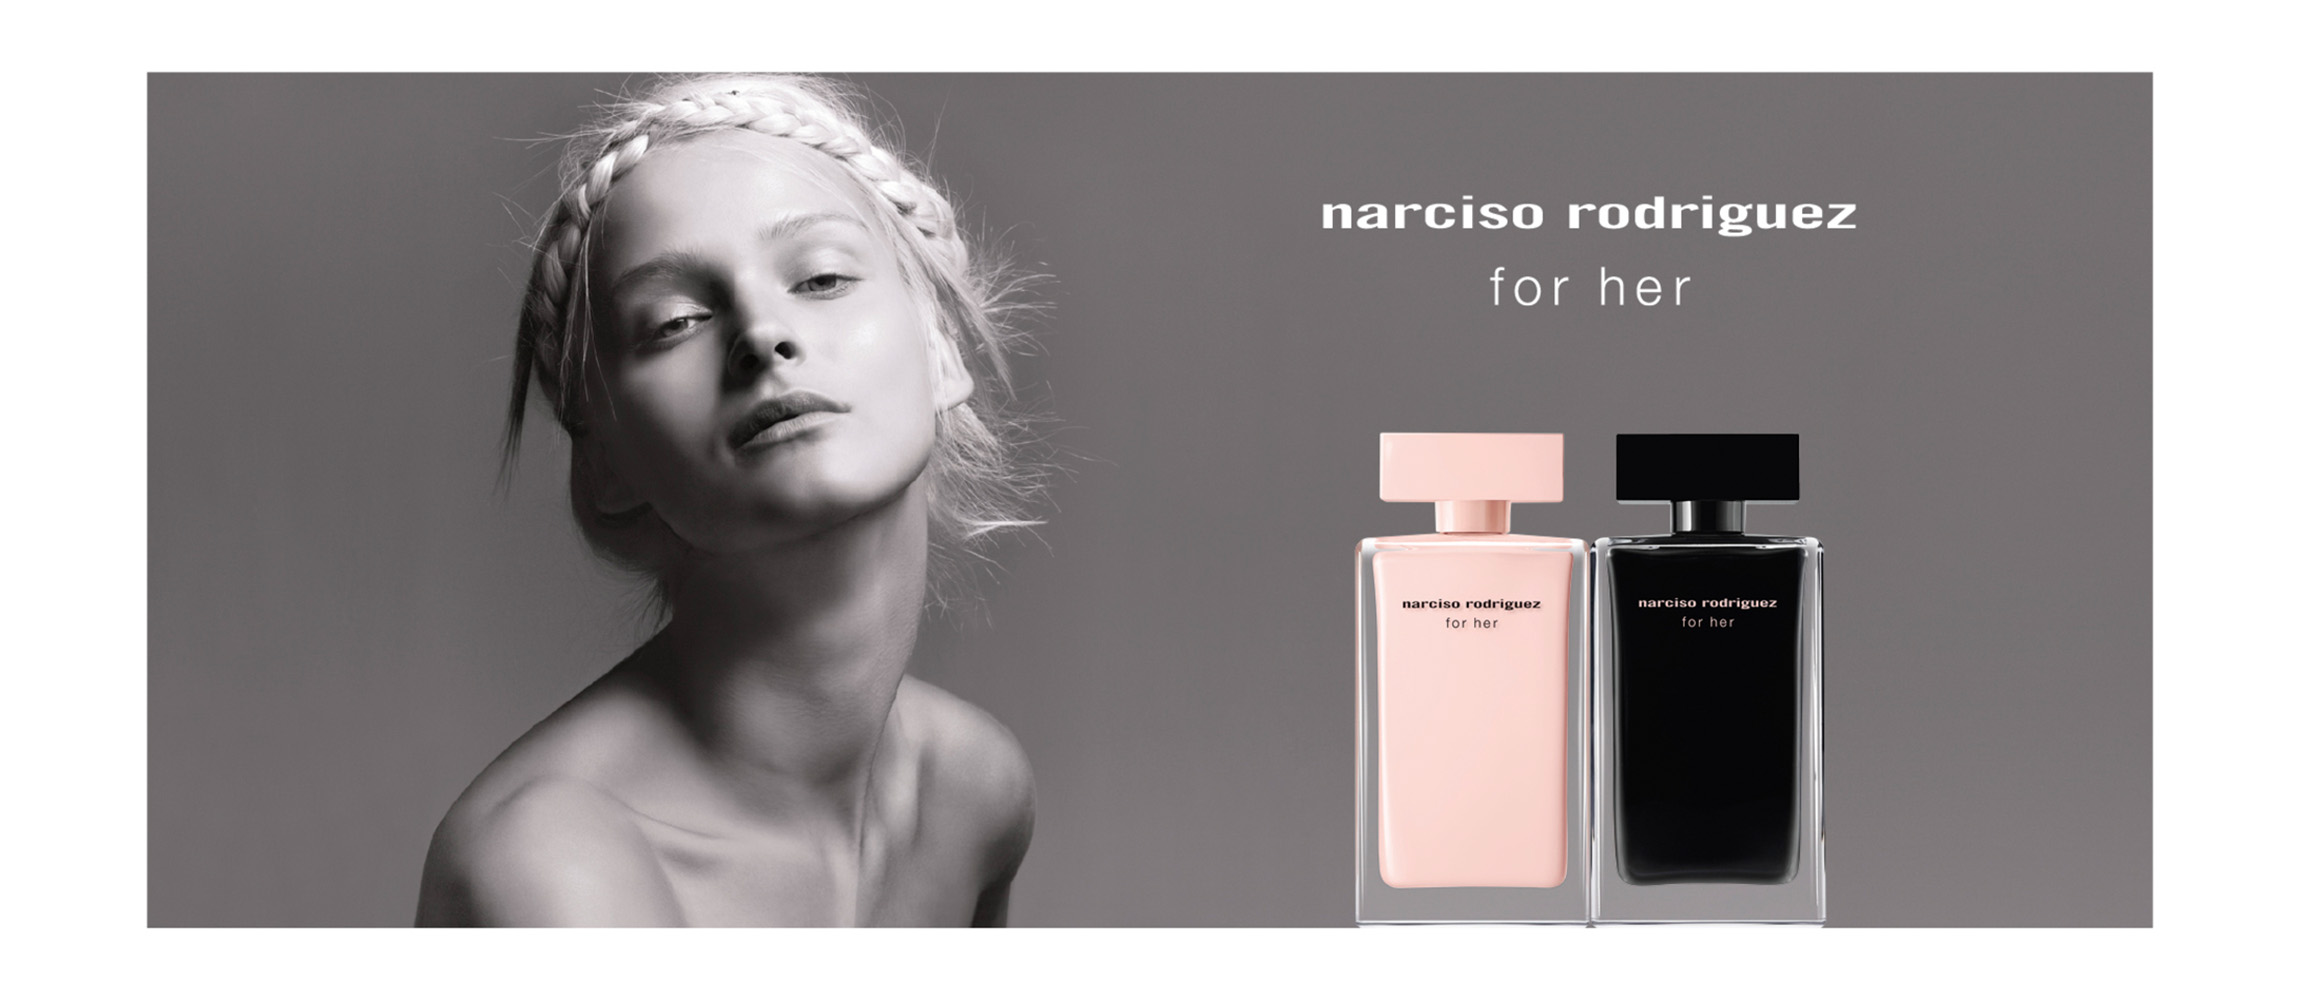 Narciso Rodriguez, for her, perfume